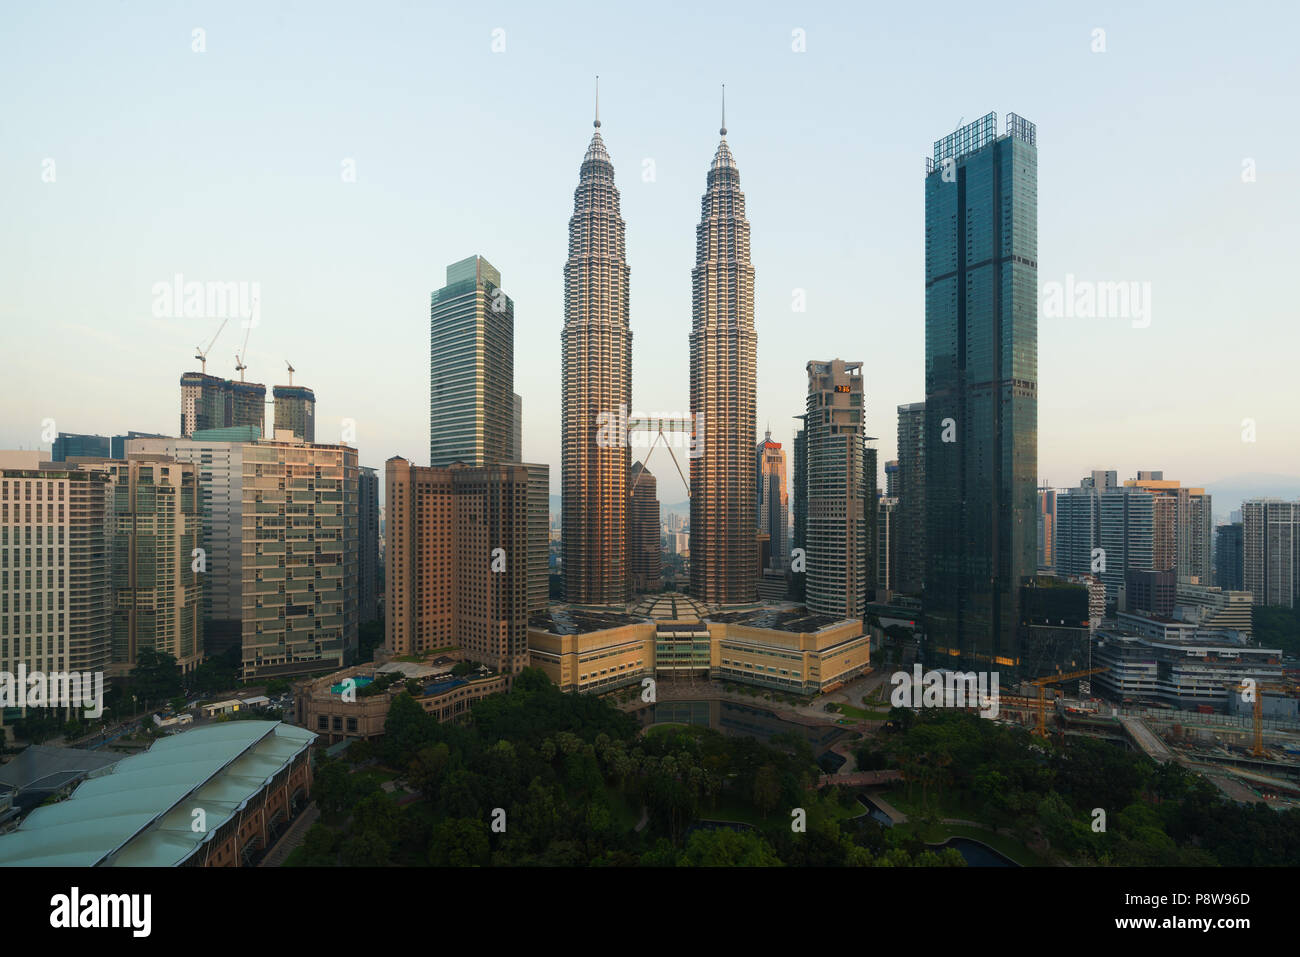 Kuala lumpur cityscape. Panoramic view of Kuala Lumpur city skyline during sunrise viewing skyscrapers building and Petronas twin tower in Malaysia. - Stock Image